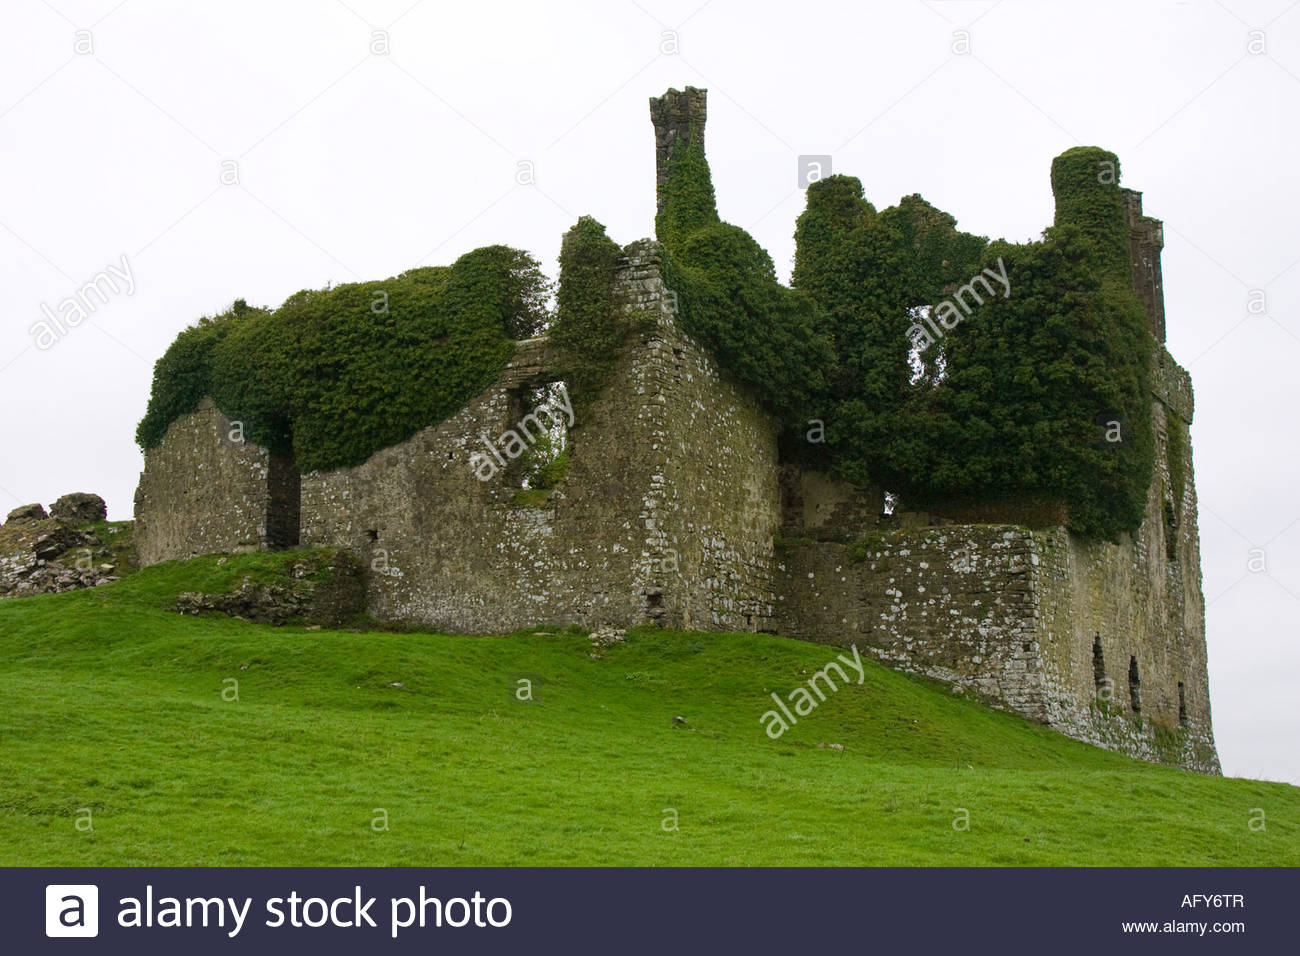 Carbury Castle Carbury County Kildare - Stock Image